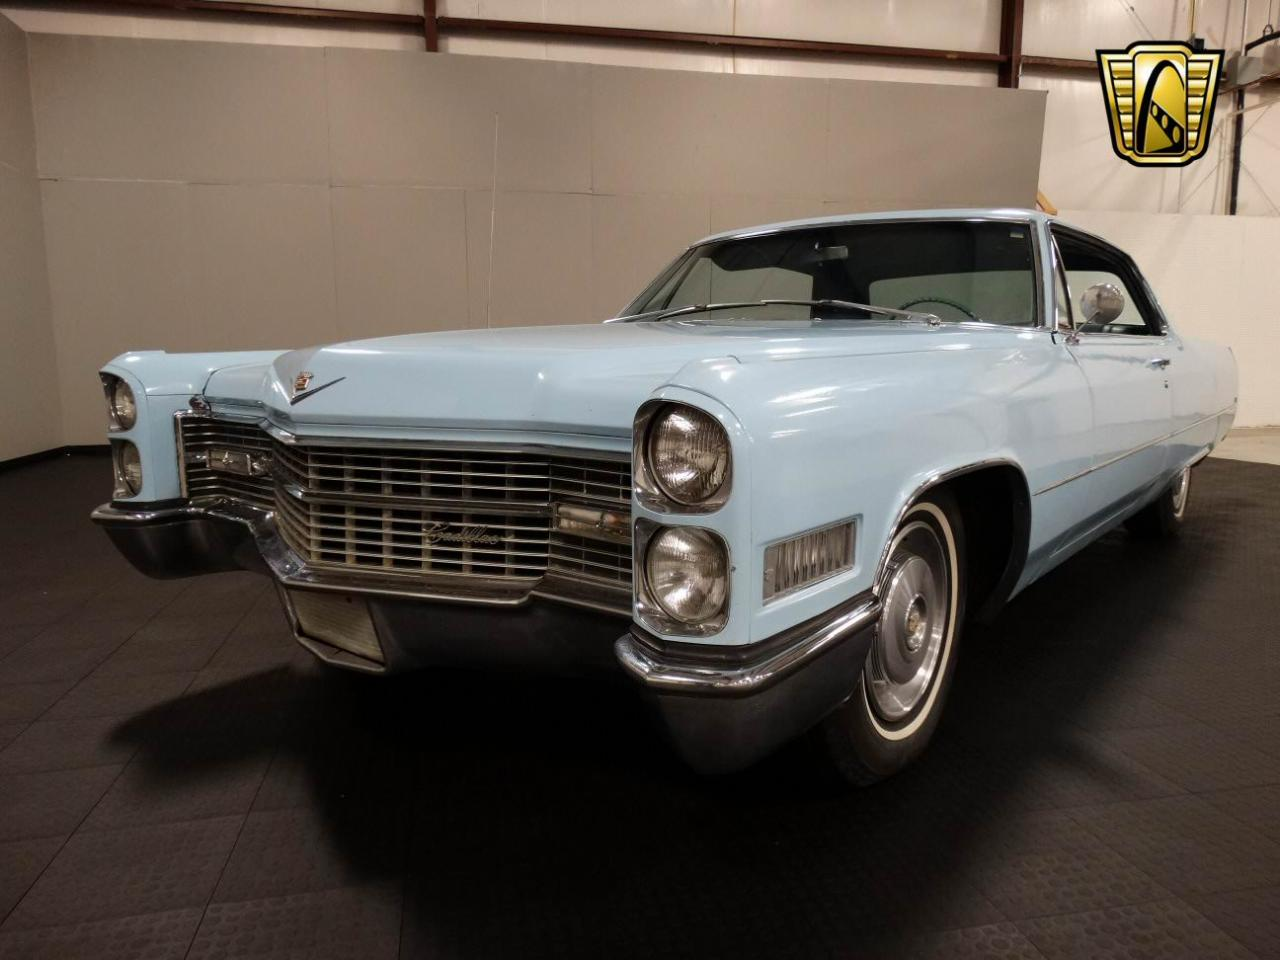 1966 Cadillac Calais For Sale Cadillac Deville 1966 For Sale In